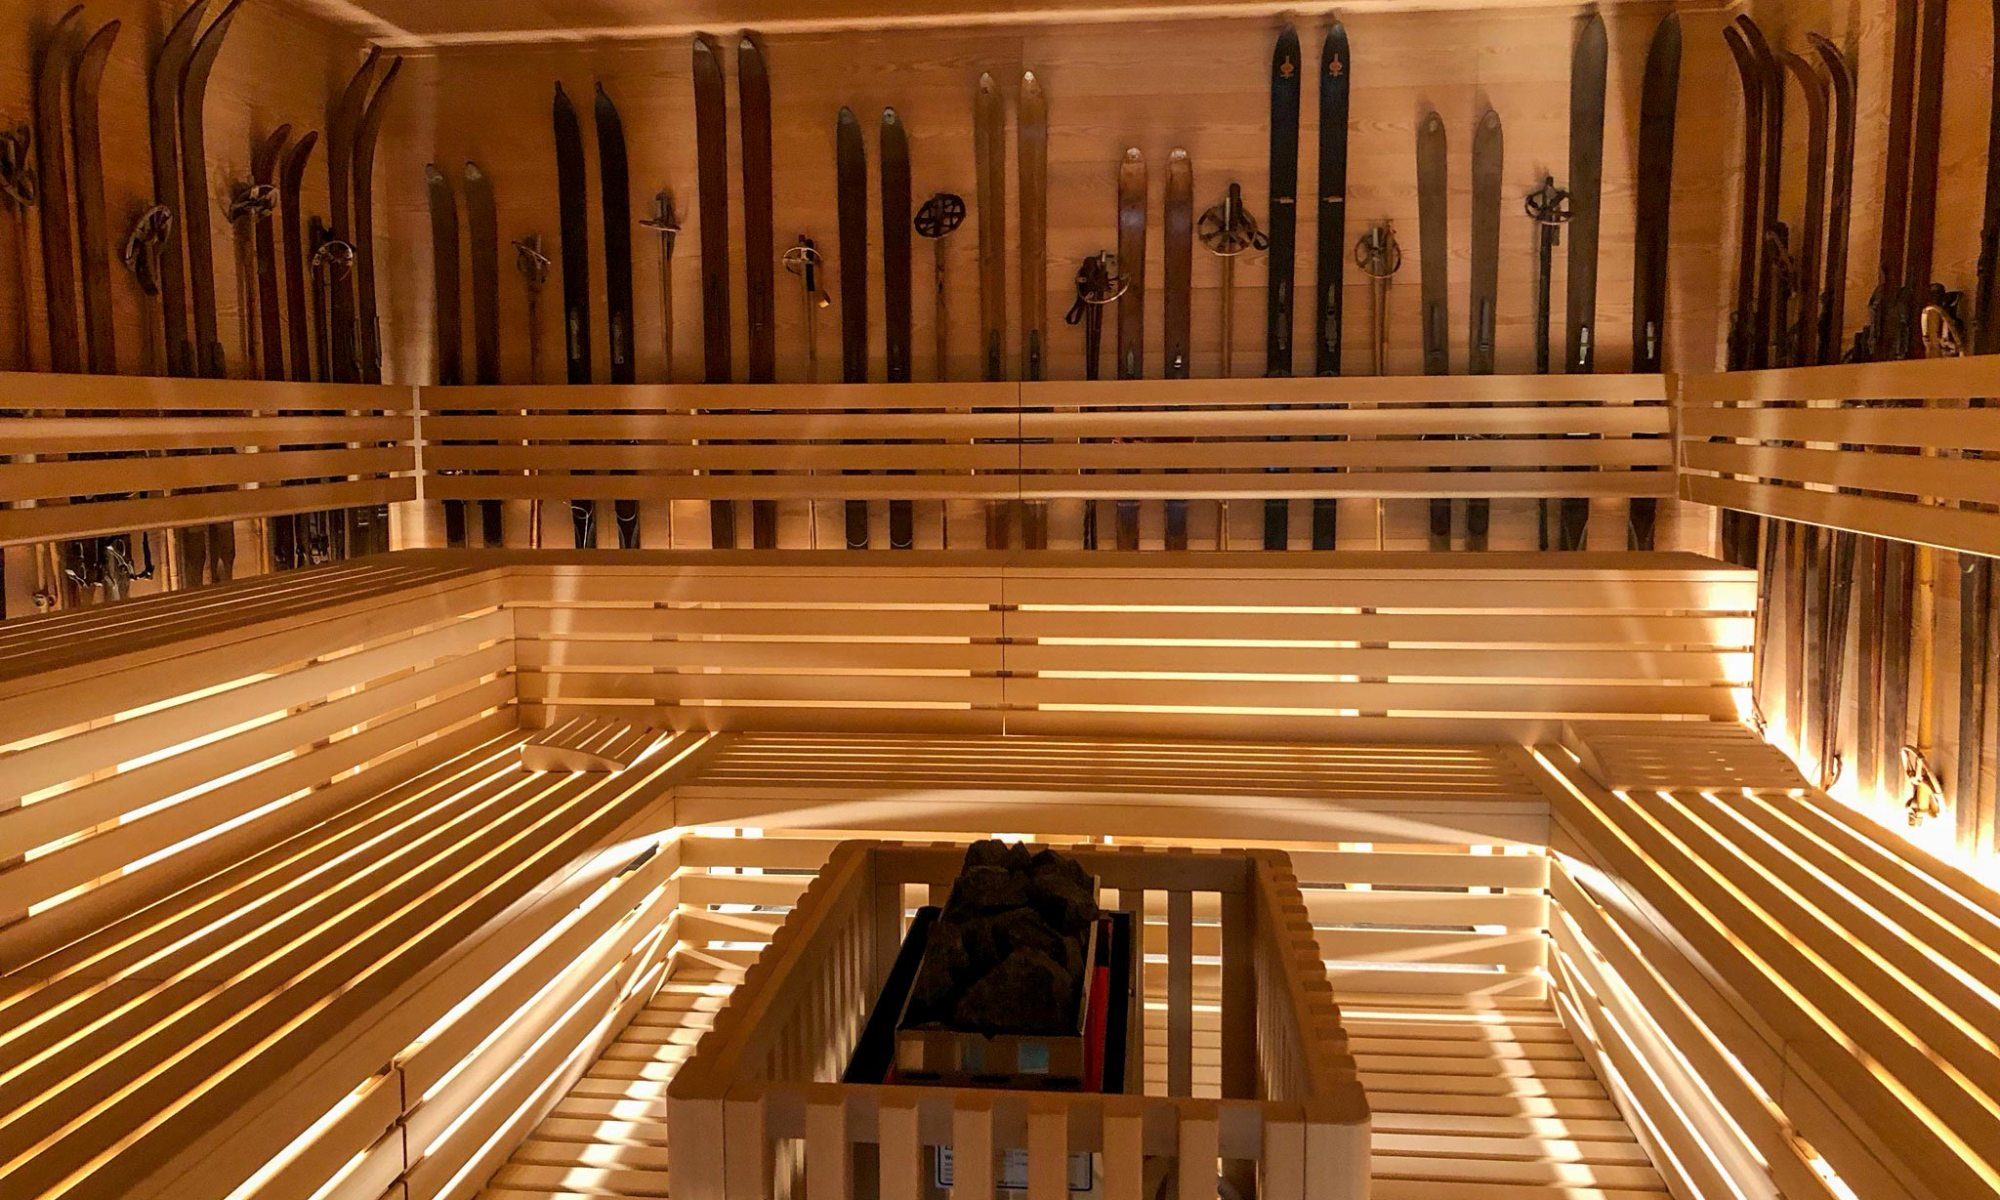 A new QC Terme opened in Chamonix - a sauna surrounded by skis.